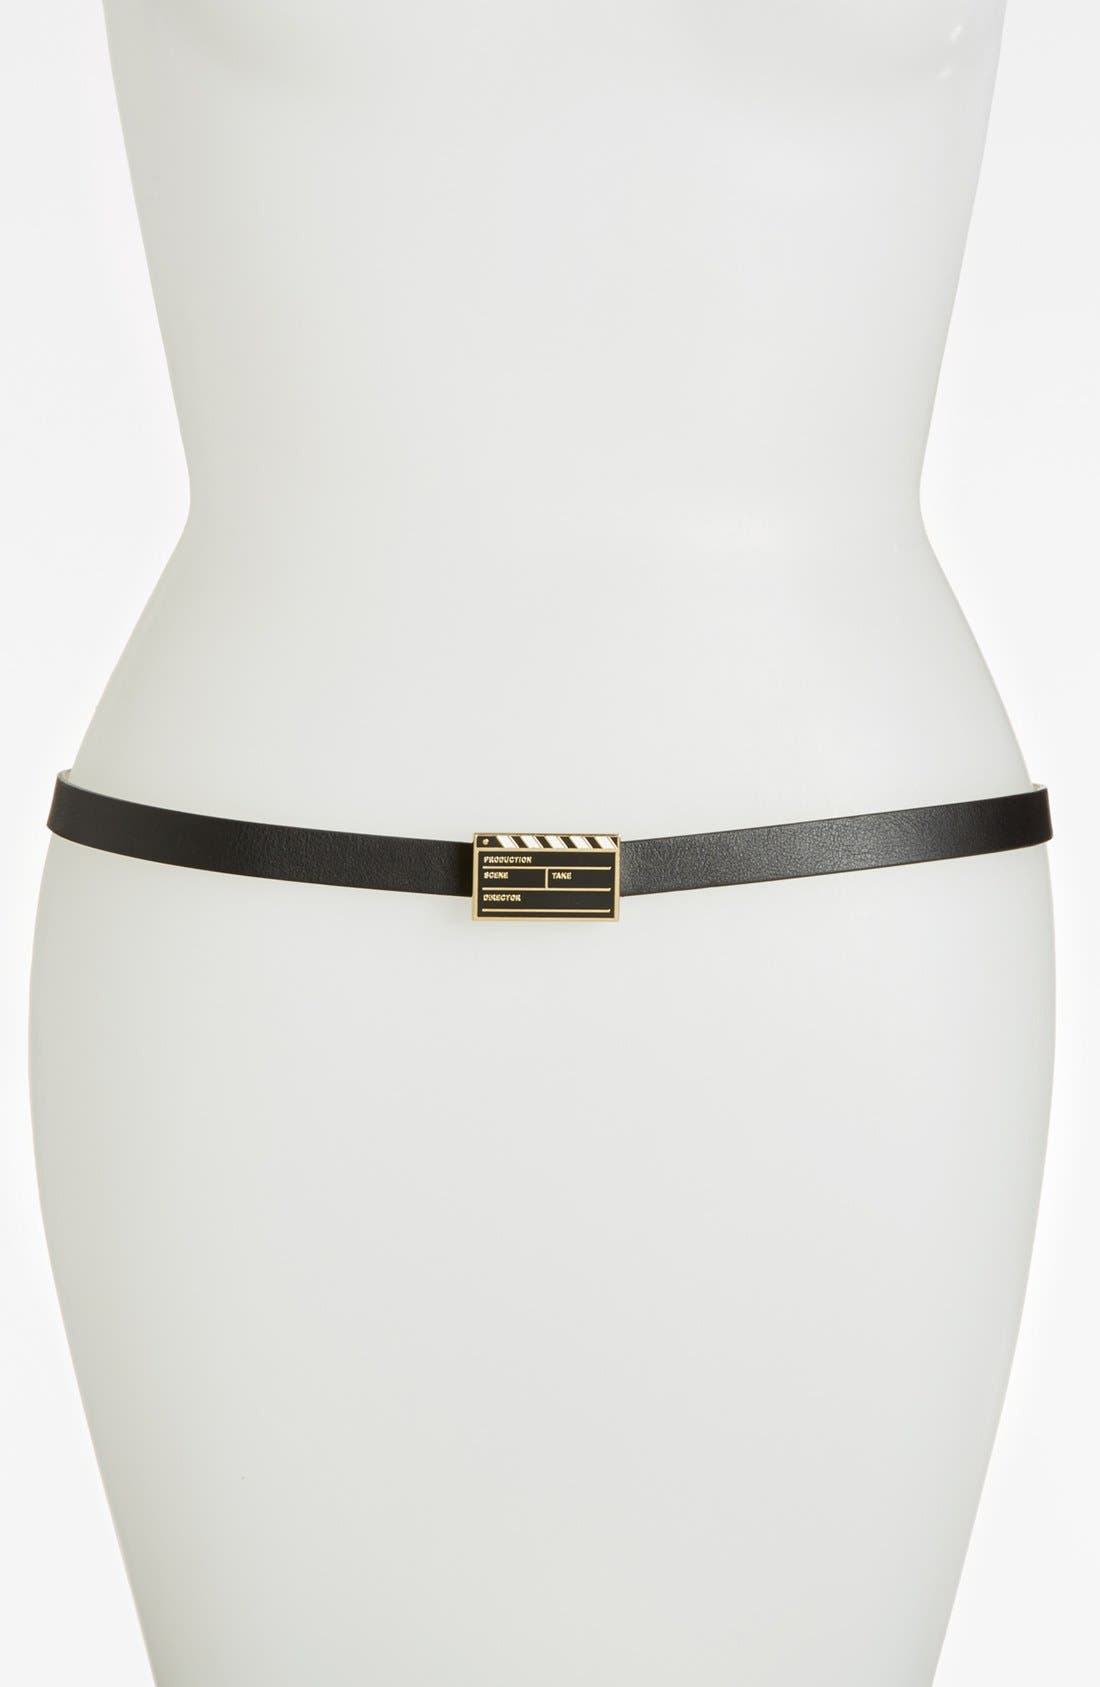 Main Image - kate spade new york 'movie' leather belt